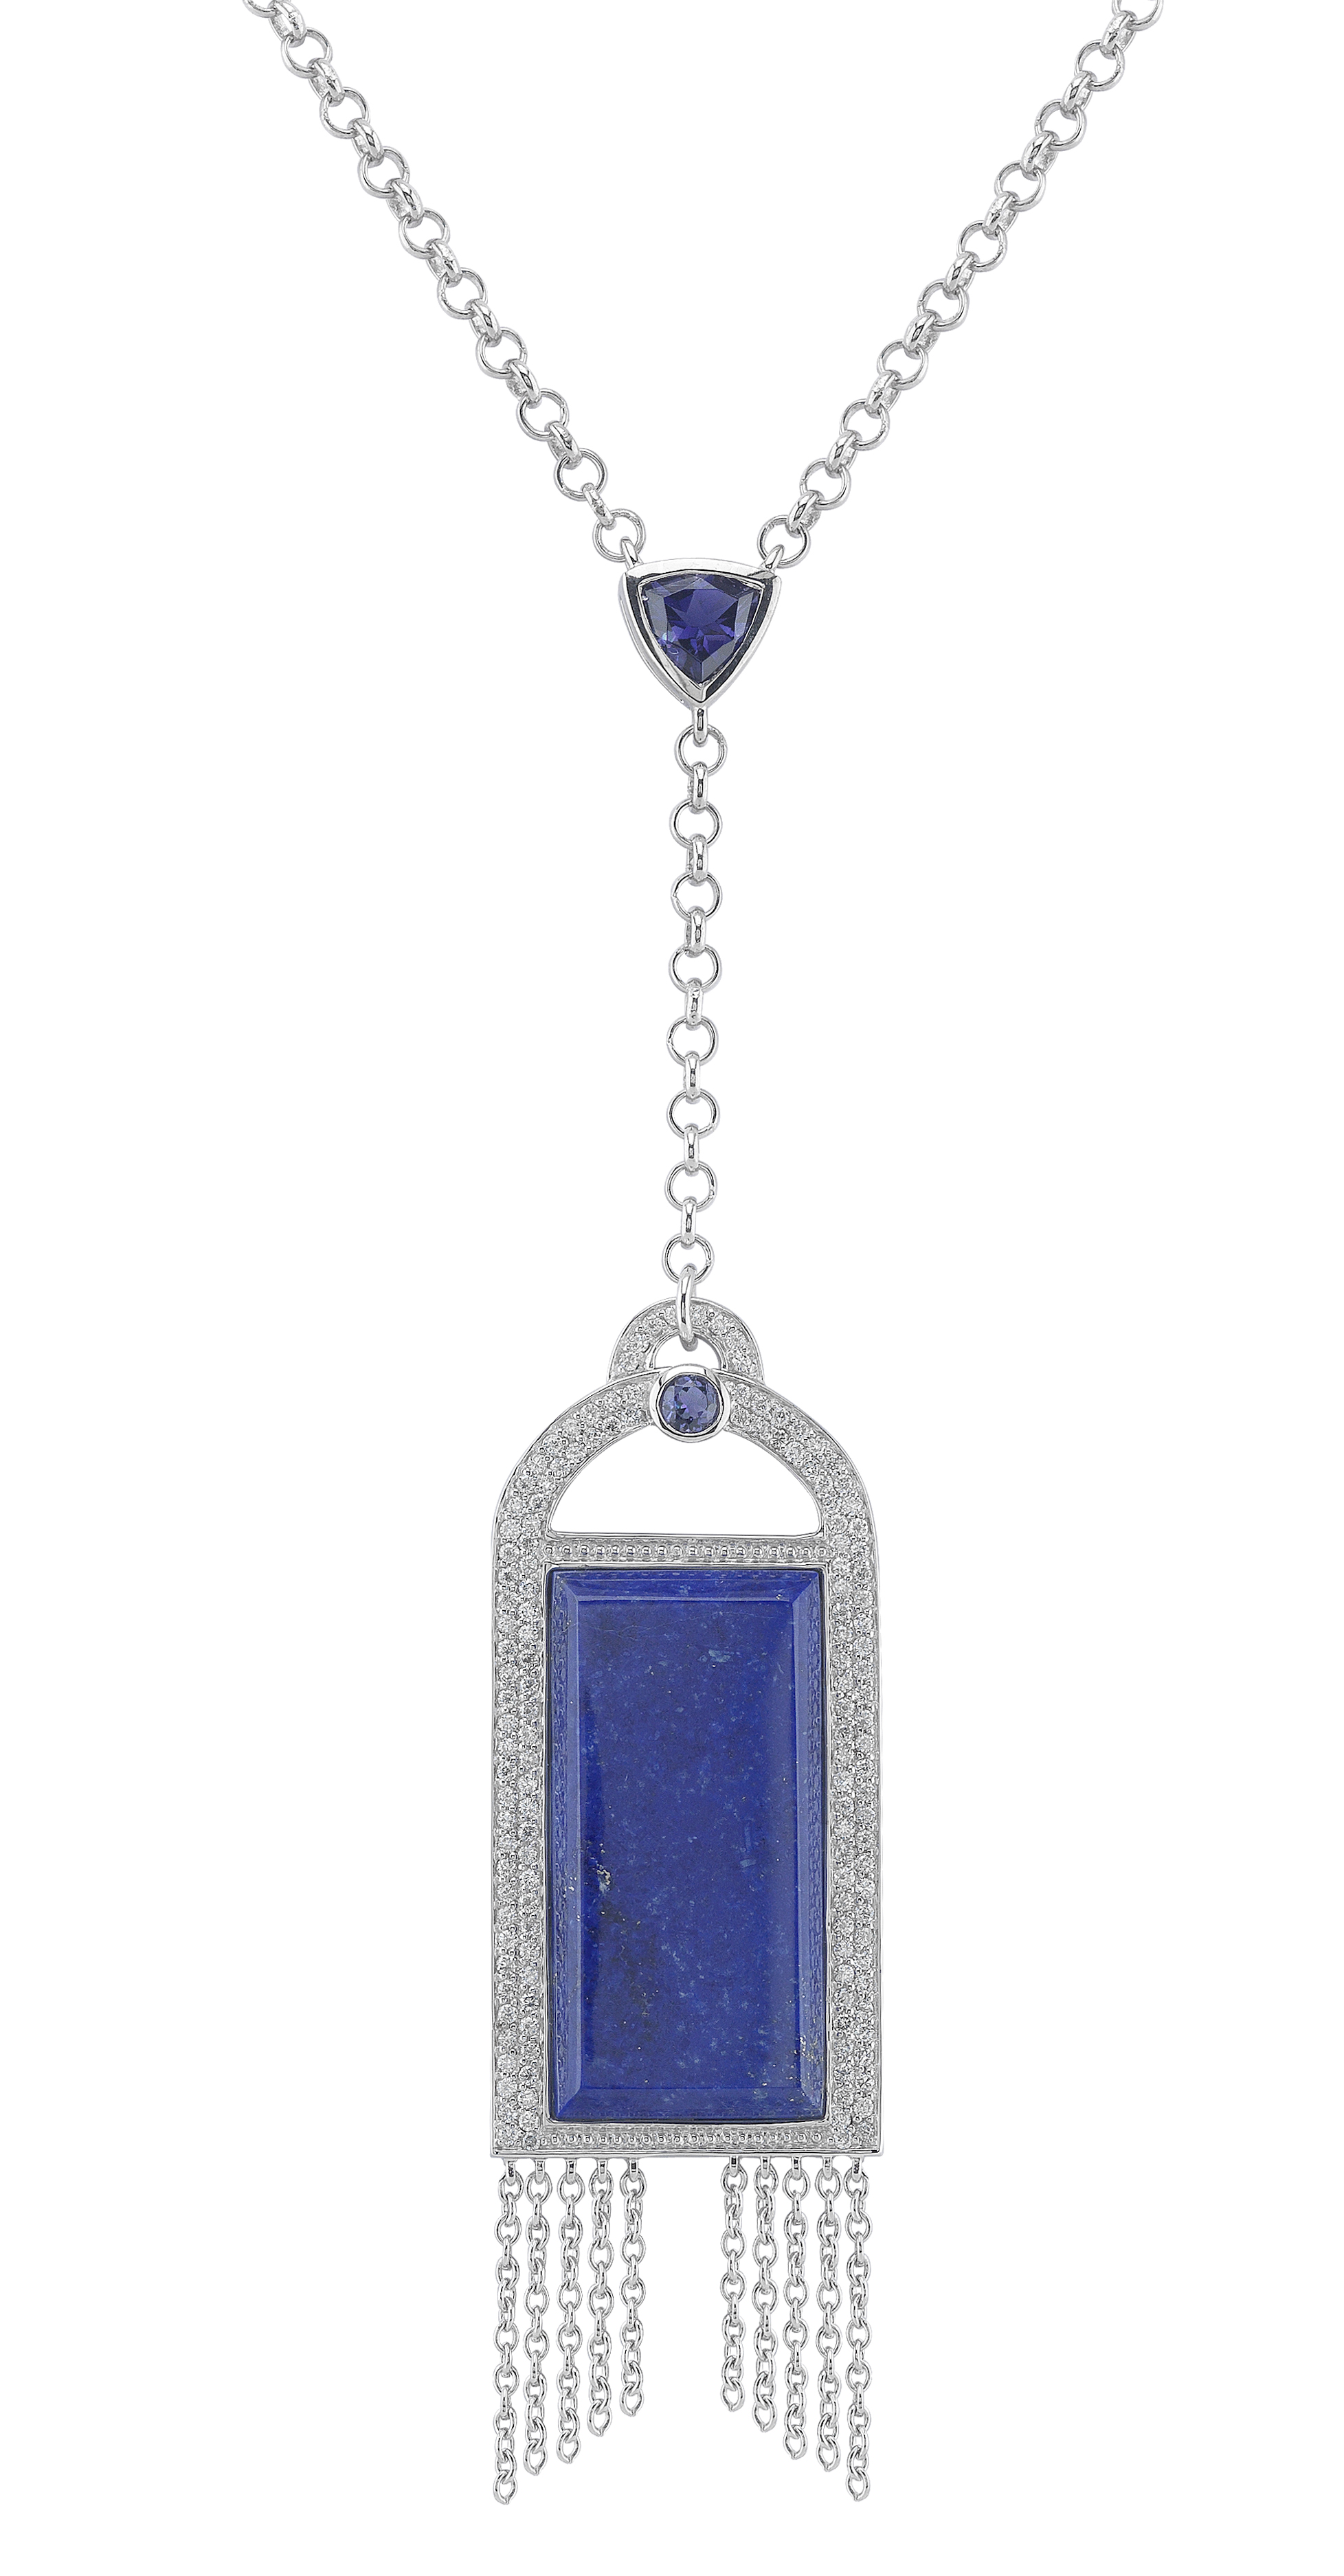 Badgley Mischka 18K Diamond & Lapis Necklace by Steven Zale